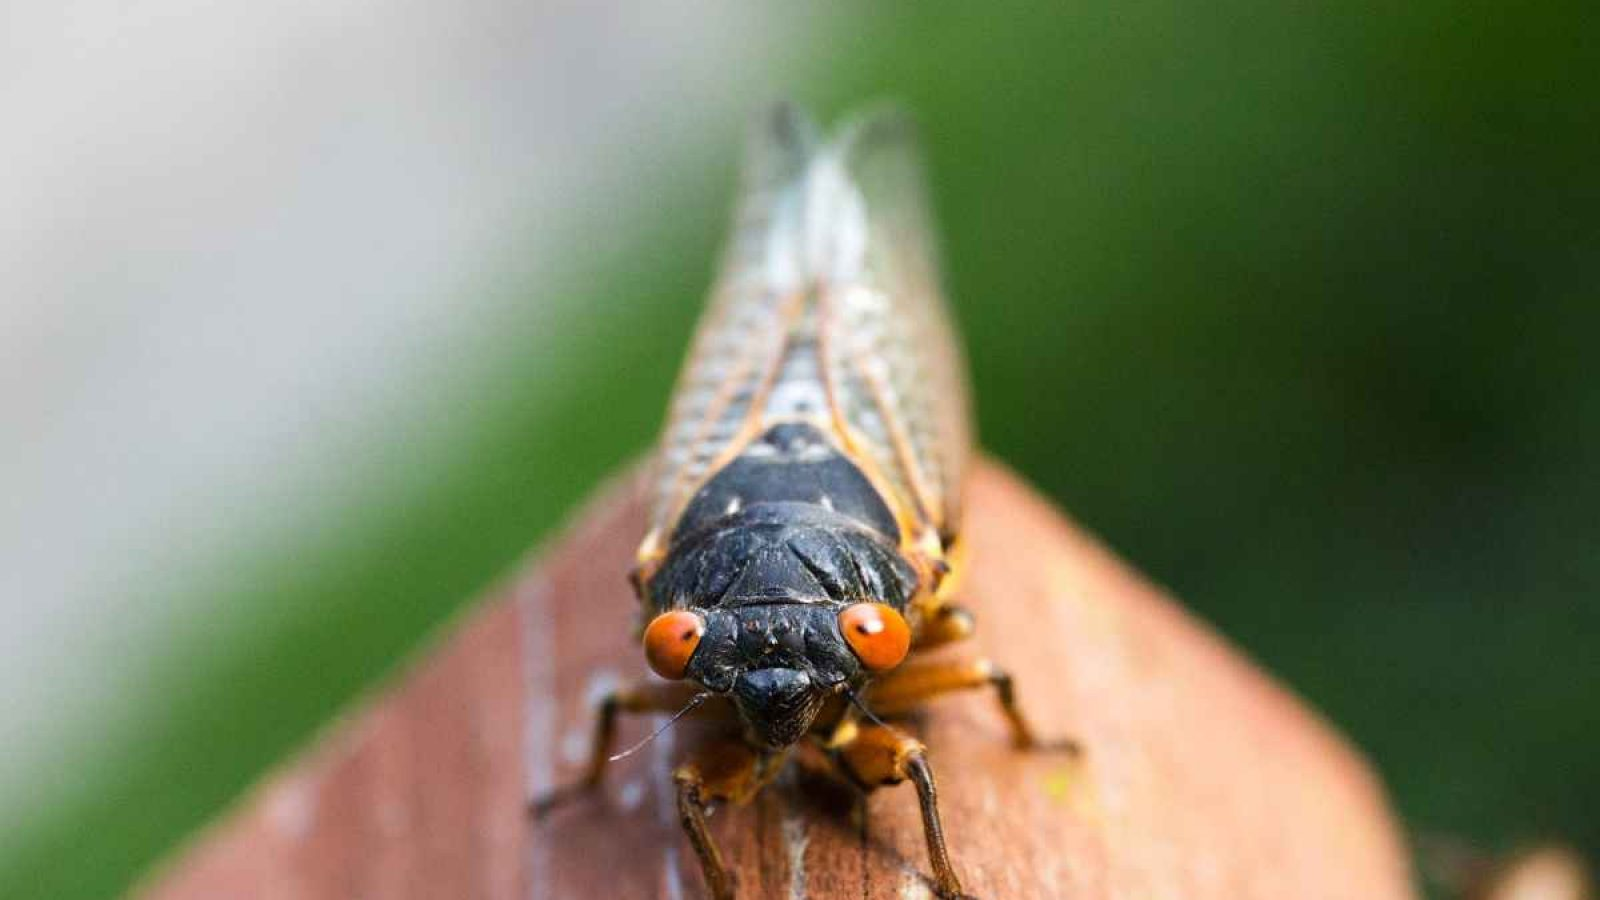 Cicada with orange eyes and closed wings